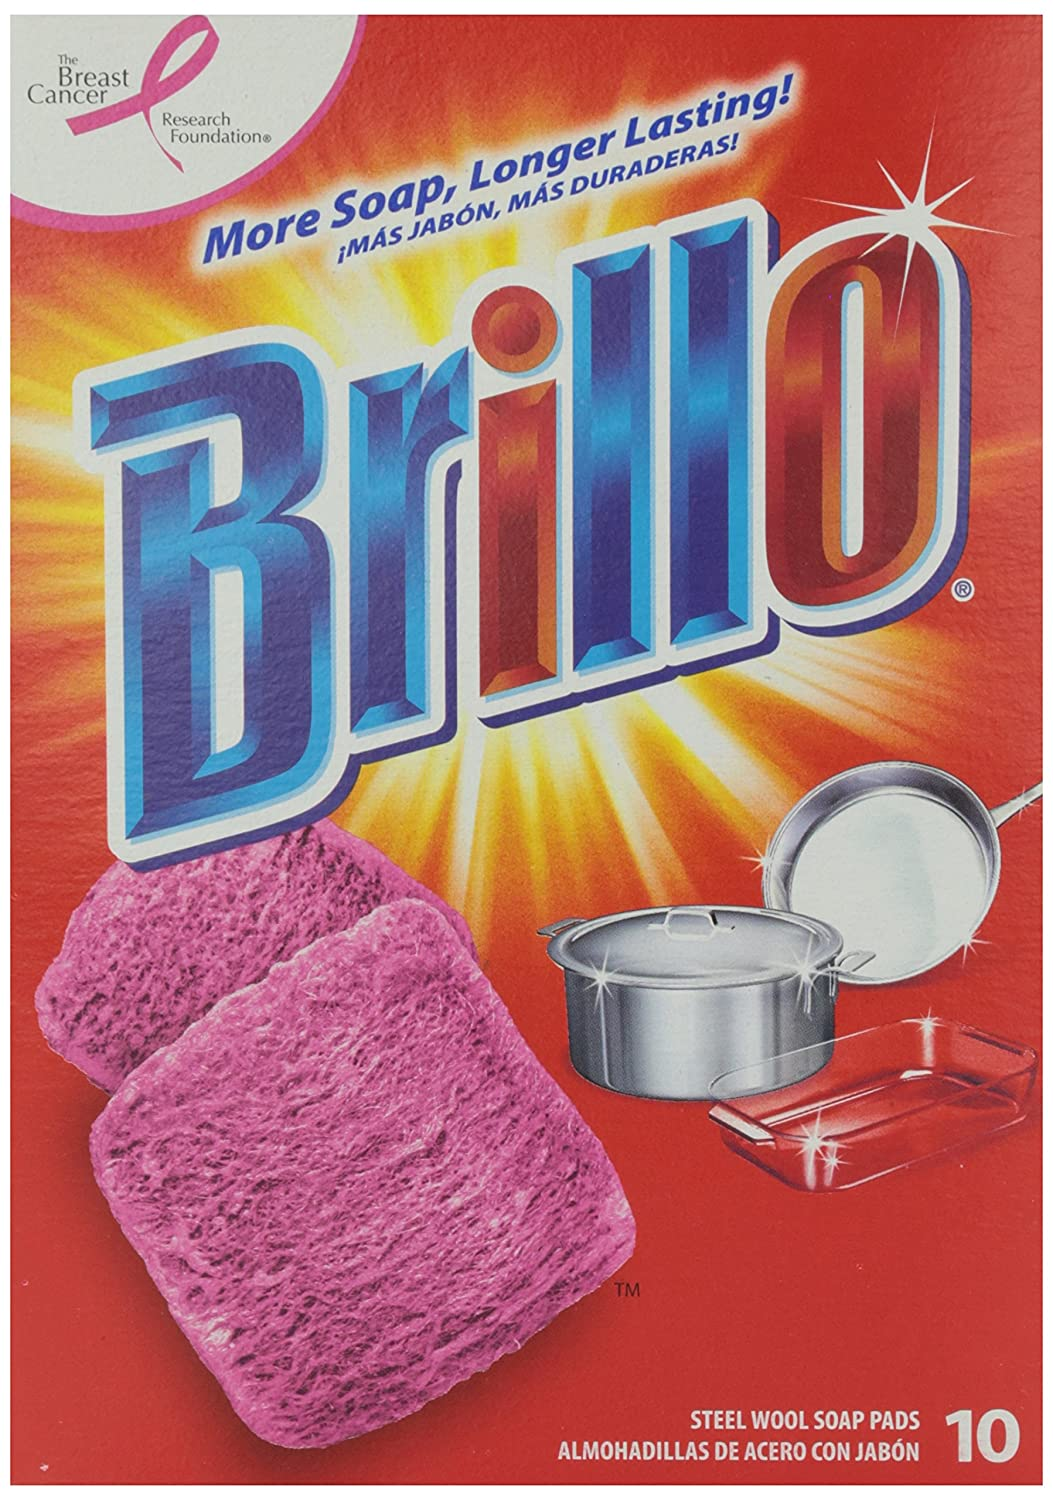 Brillo Steel Wool Soap Pads 10 ct Armaly Brands 070881233101